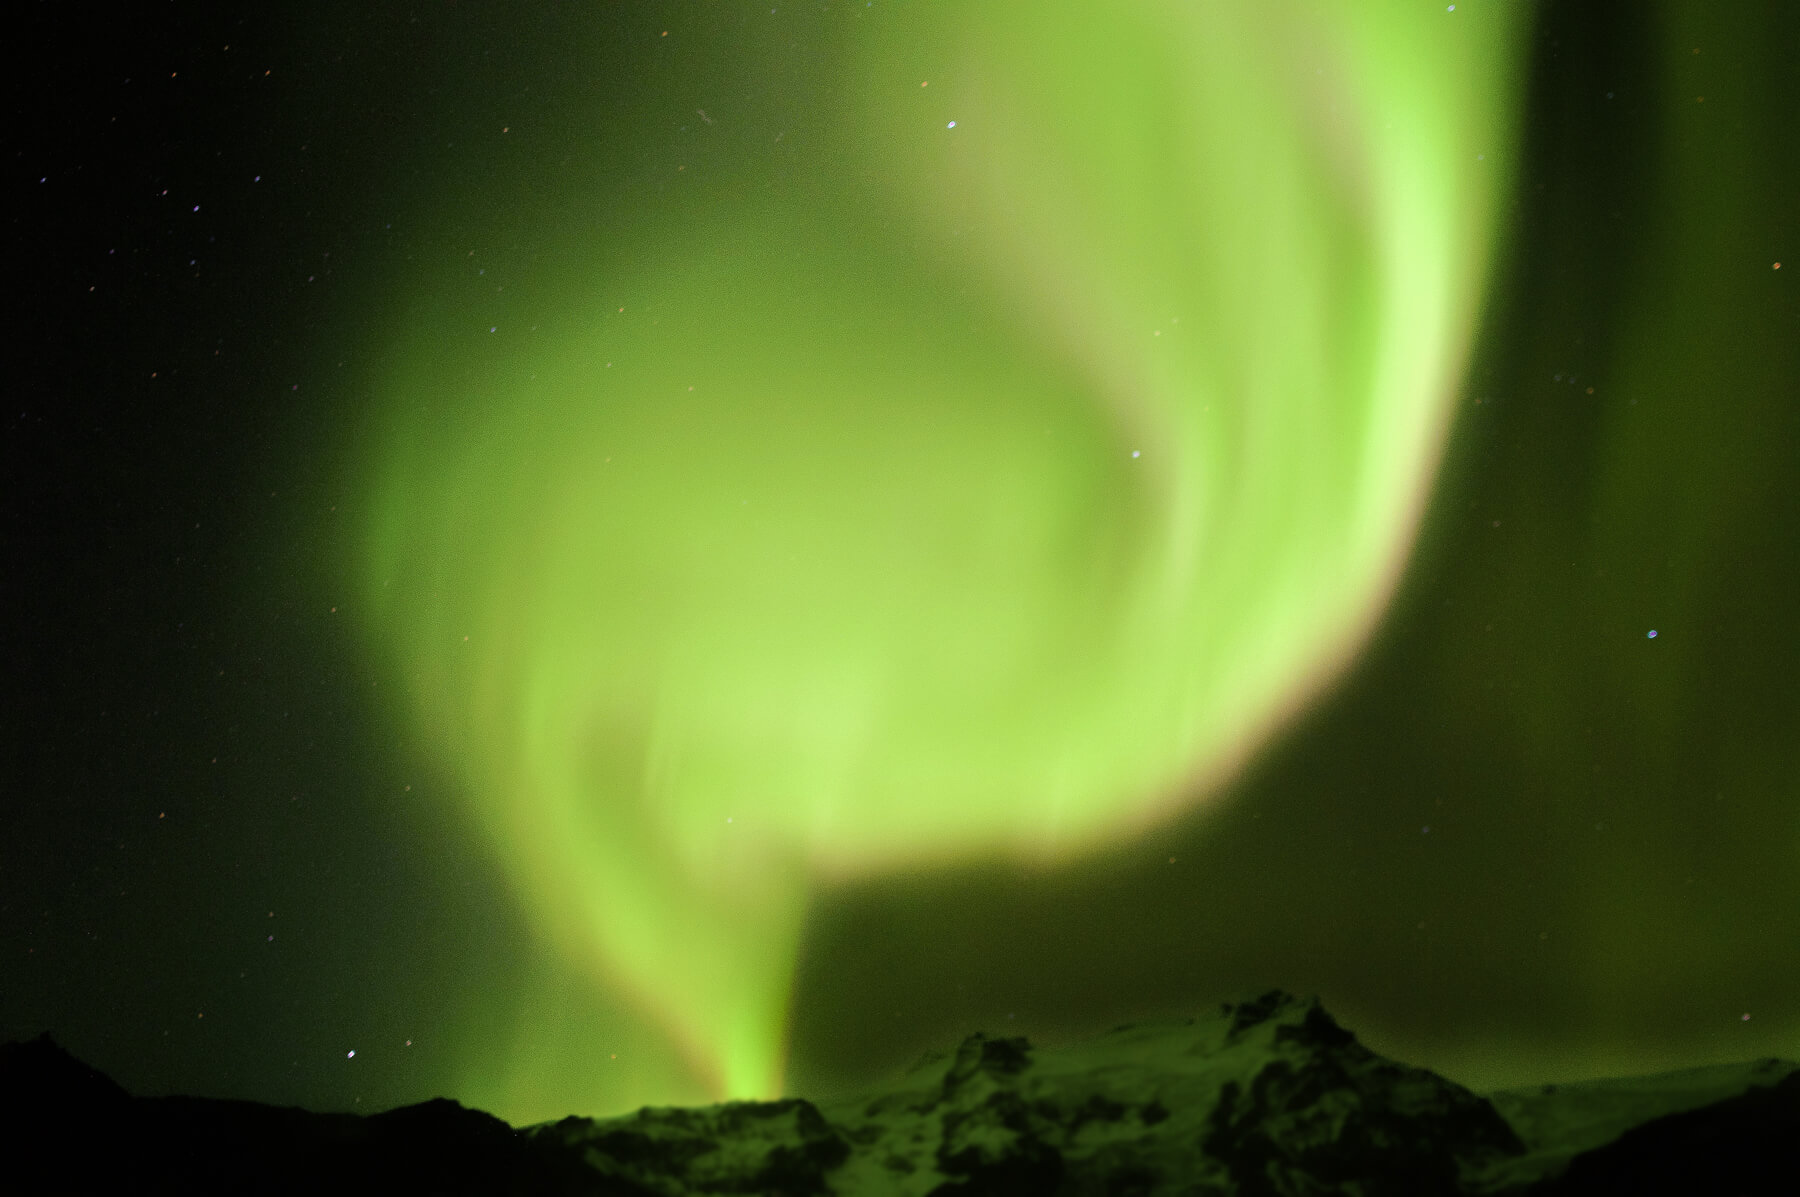 Bright, swirling green aurora heading behind a mountain peak